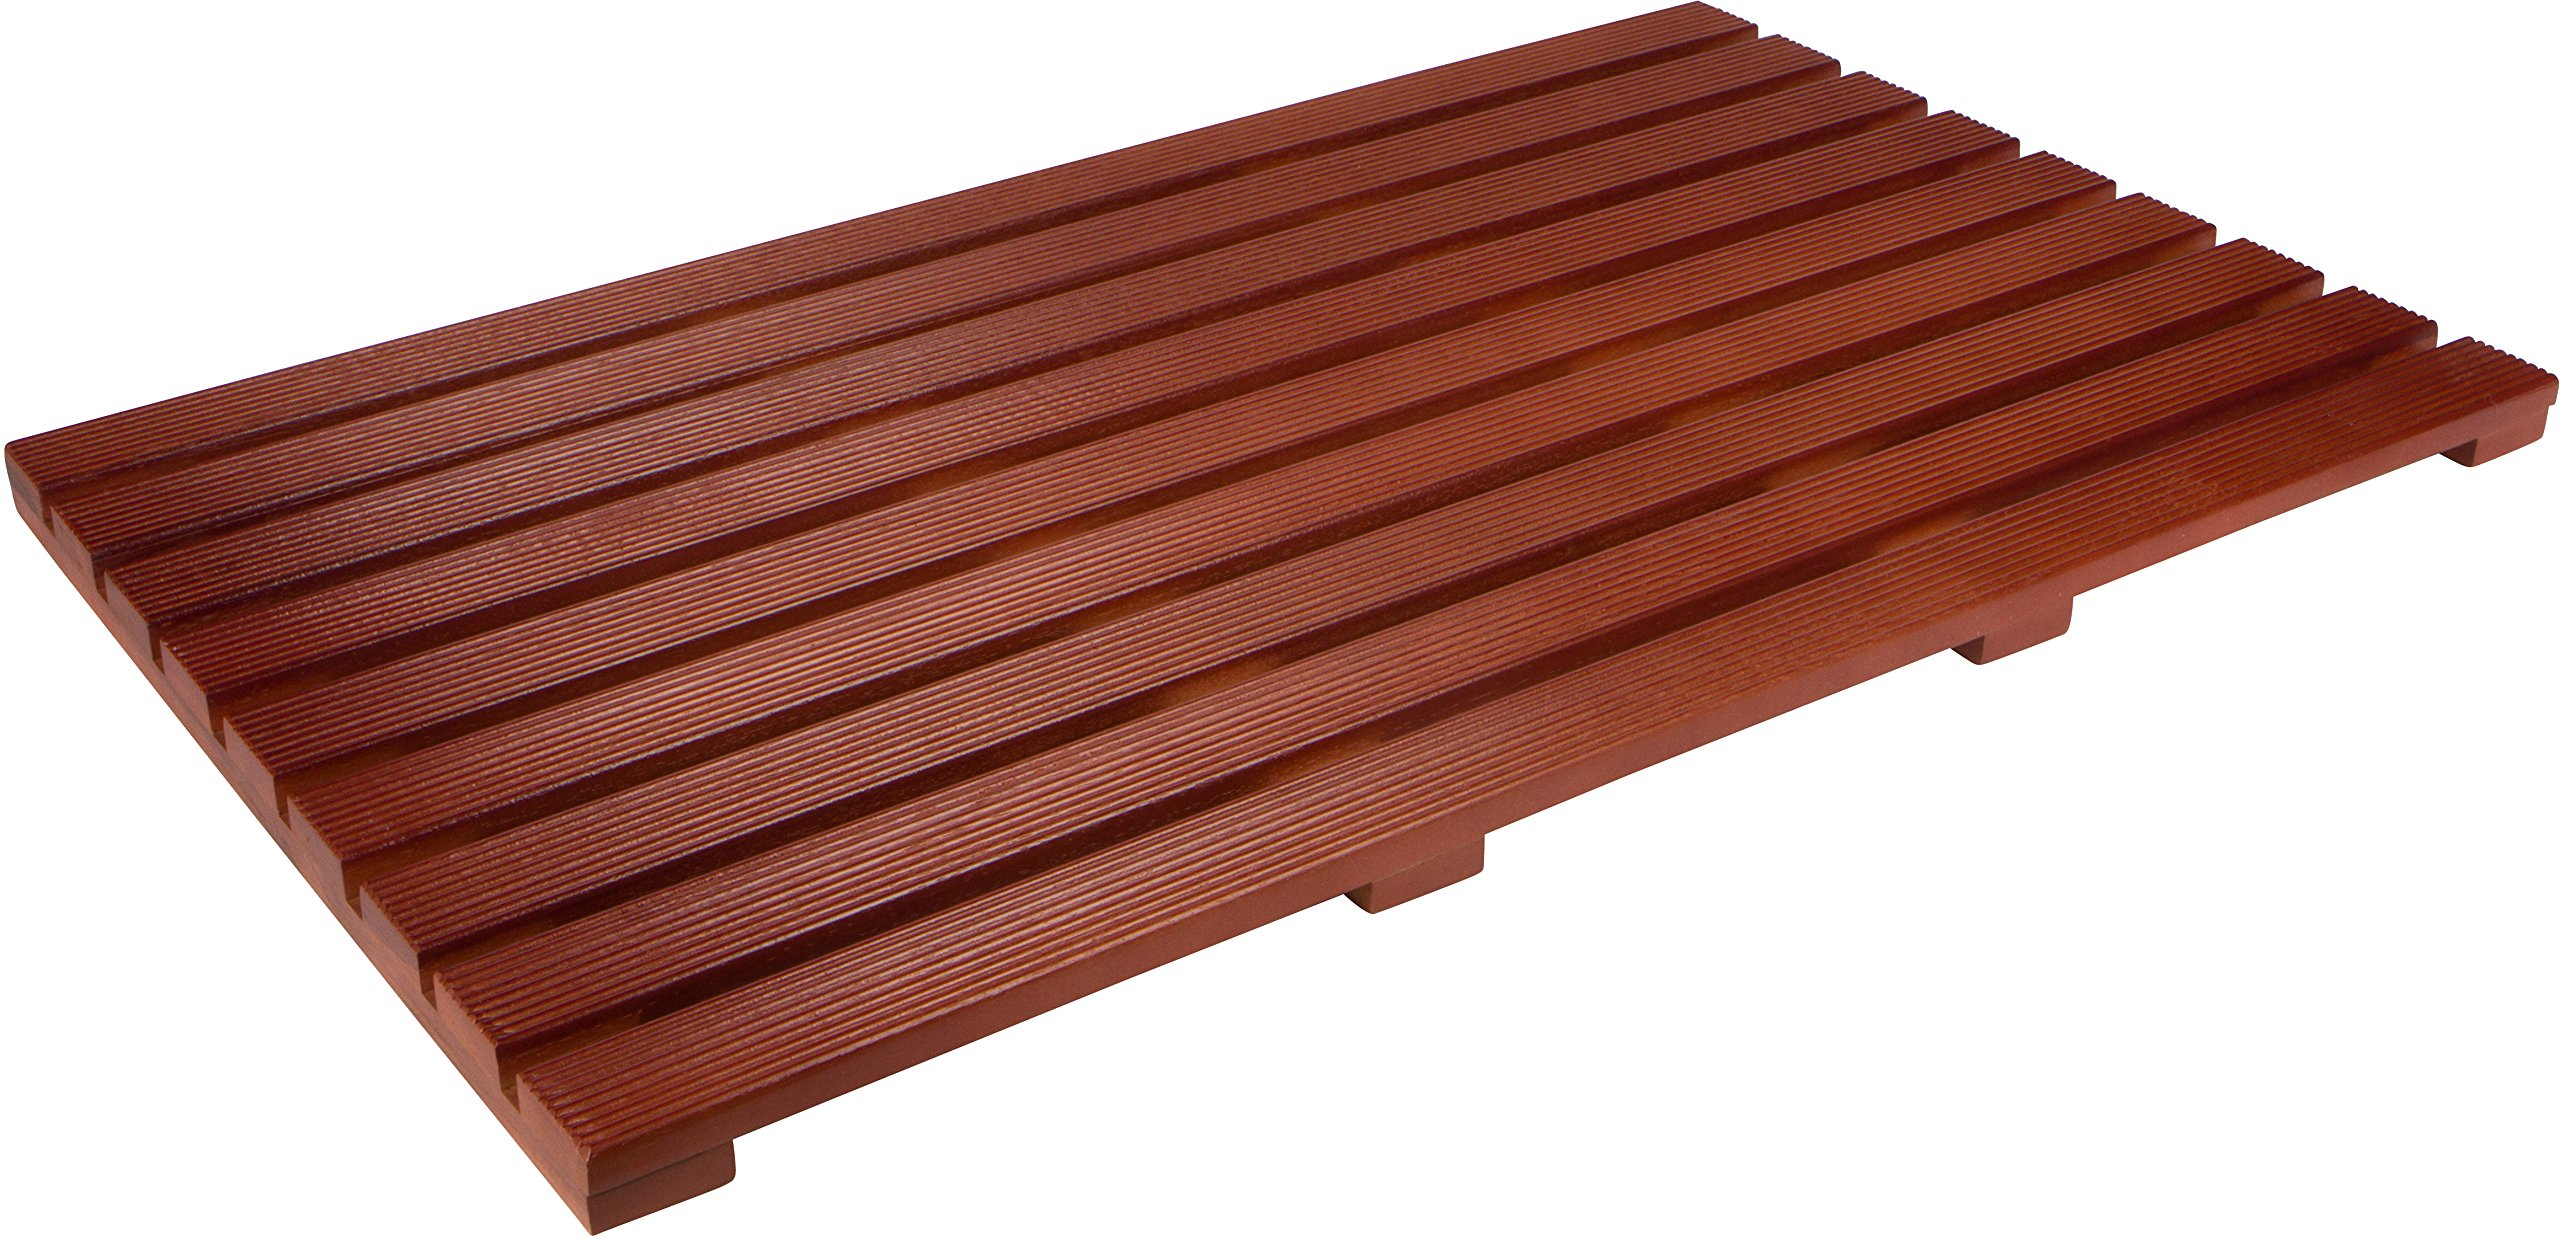 31.5'' Solid Teak Wood Non Slip Spa Shower or Door Mat by Trademark Innovations